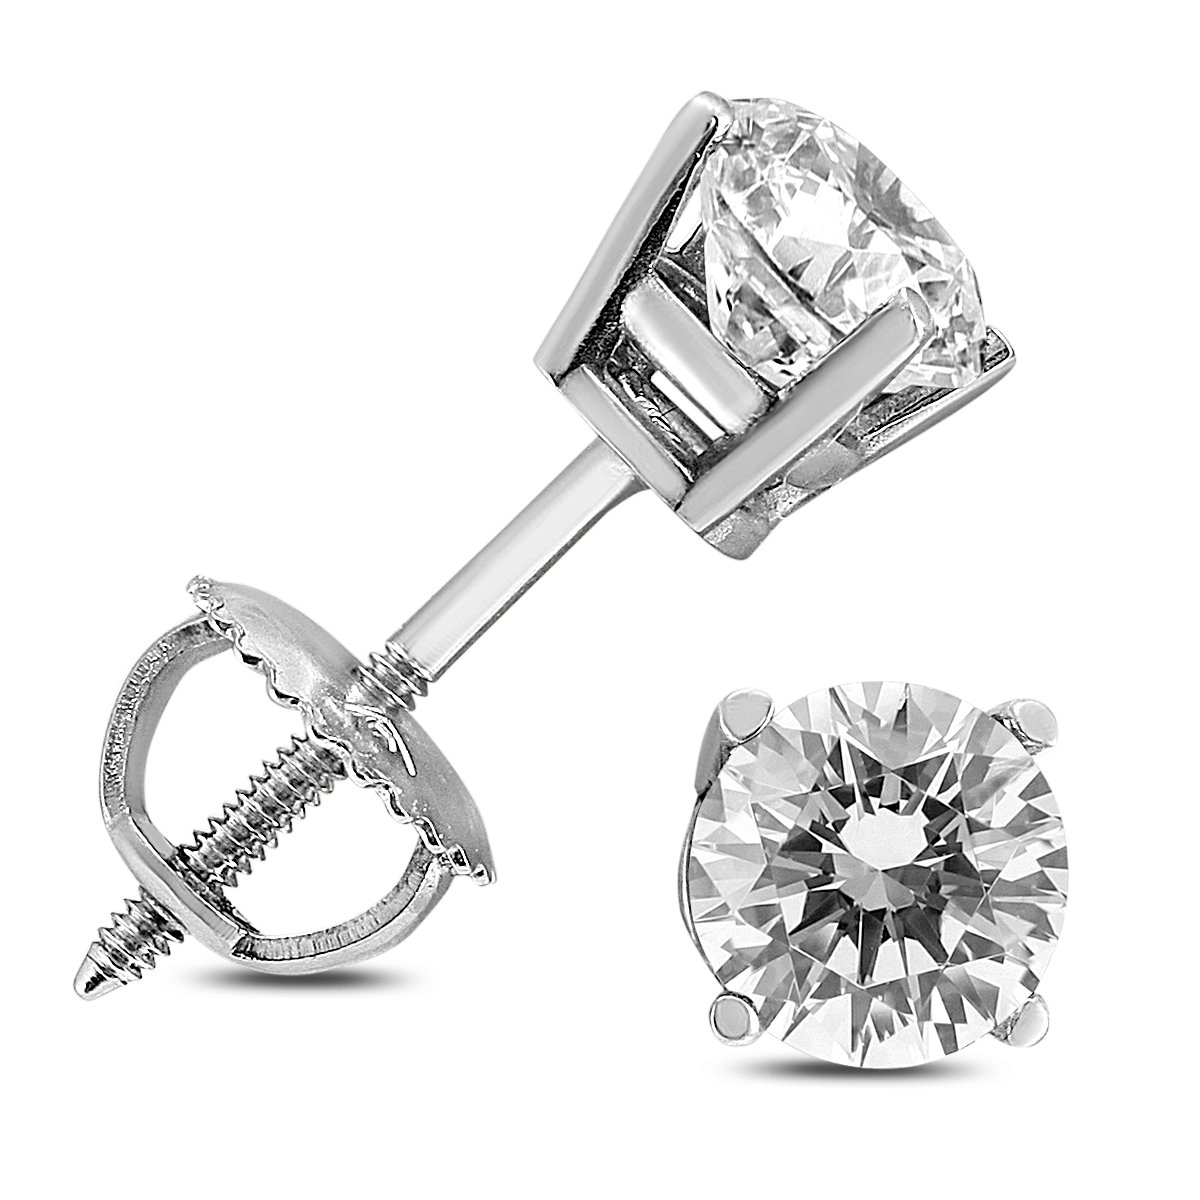 Amazon.com  1 Carat TW AGS Certified Round Diamond Solitaire Stud Earrings  in 14K White Gold  Jewelry df2247e2f5